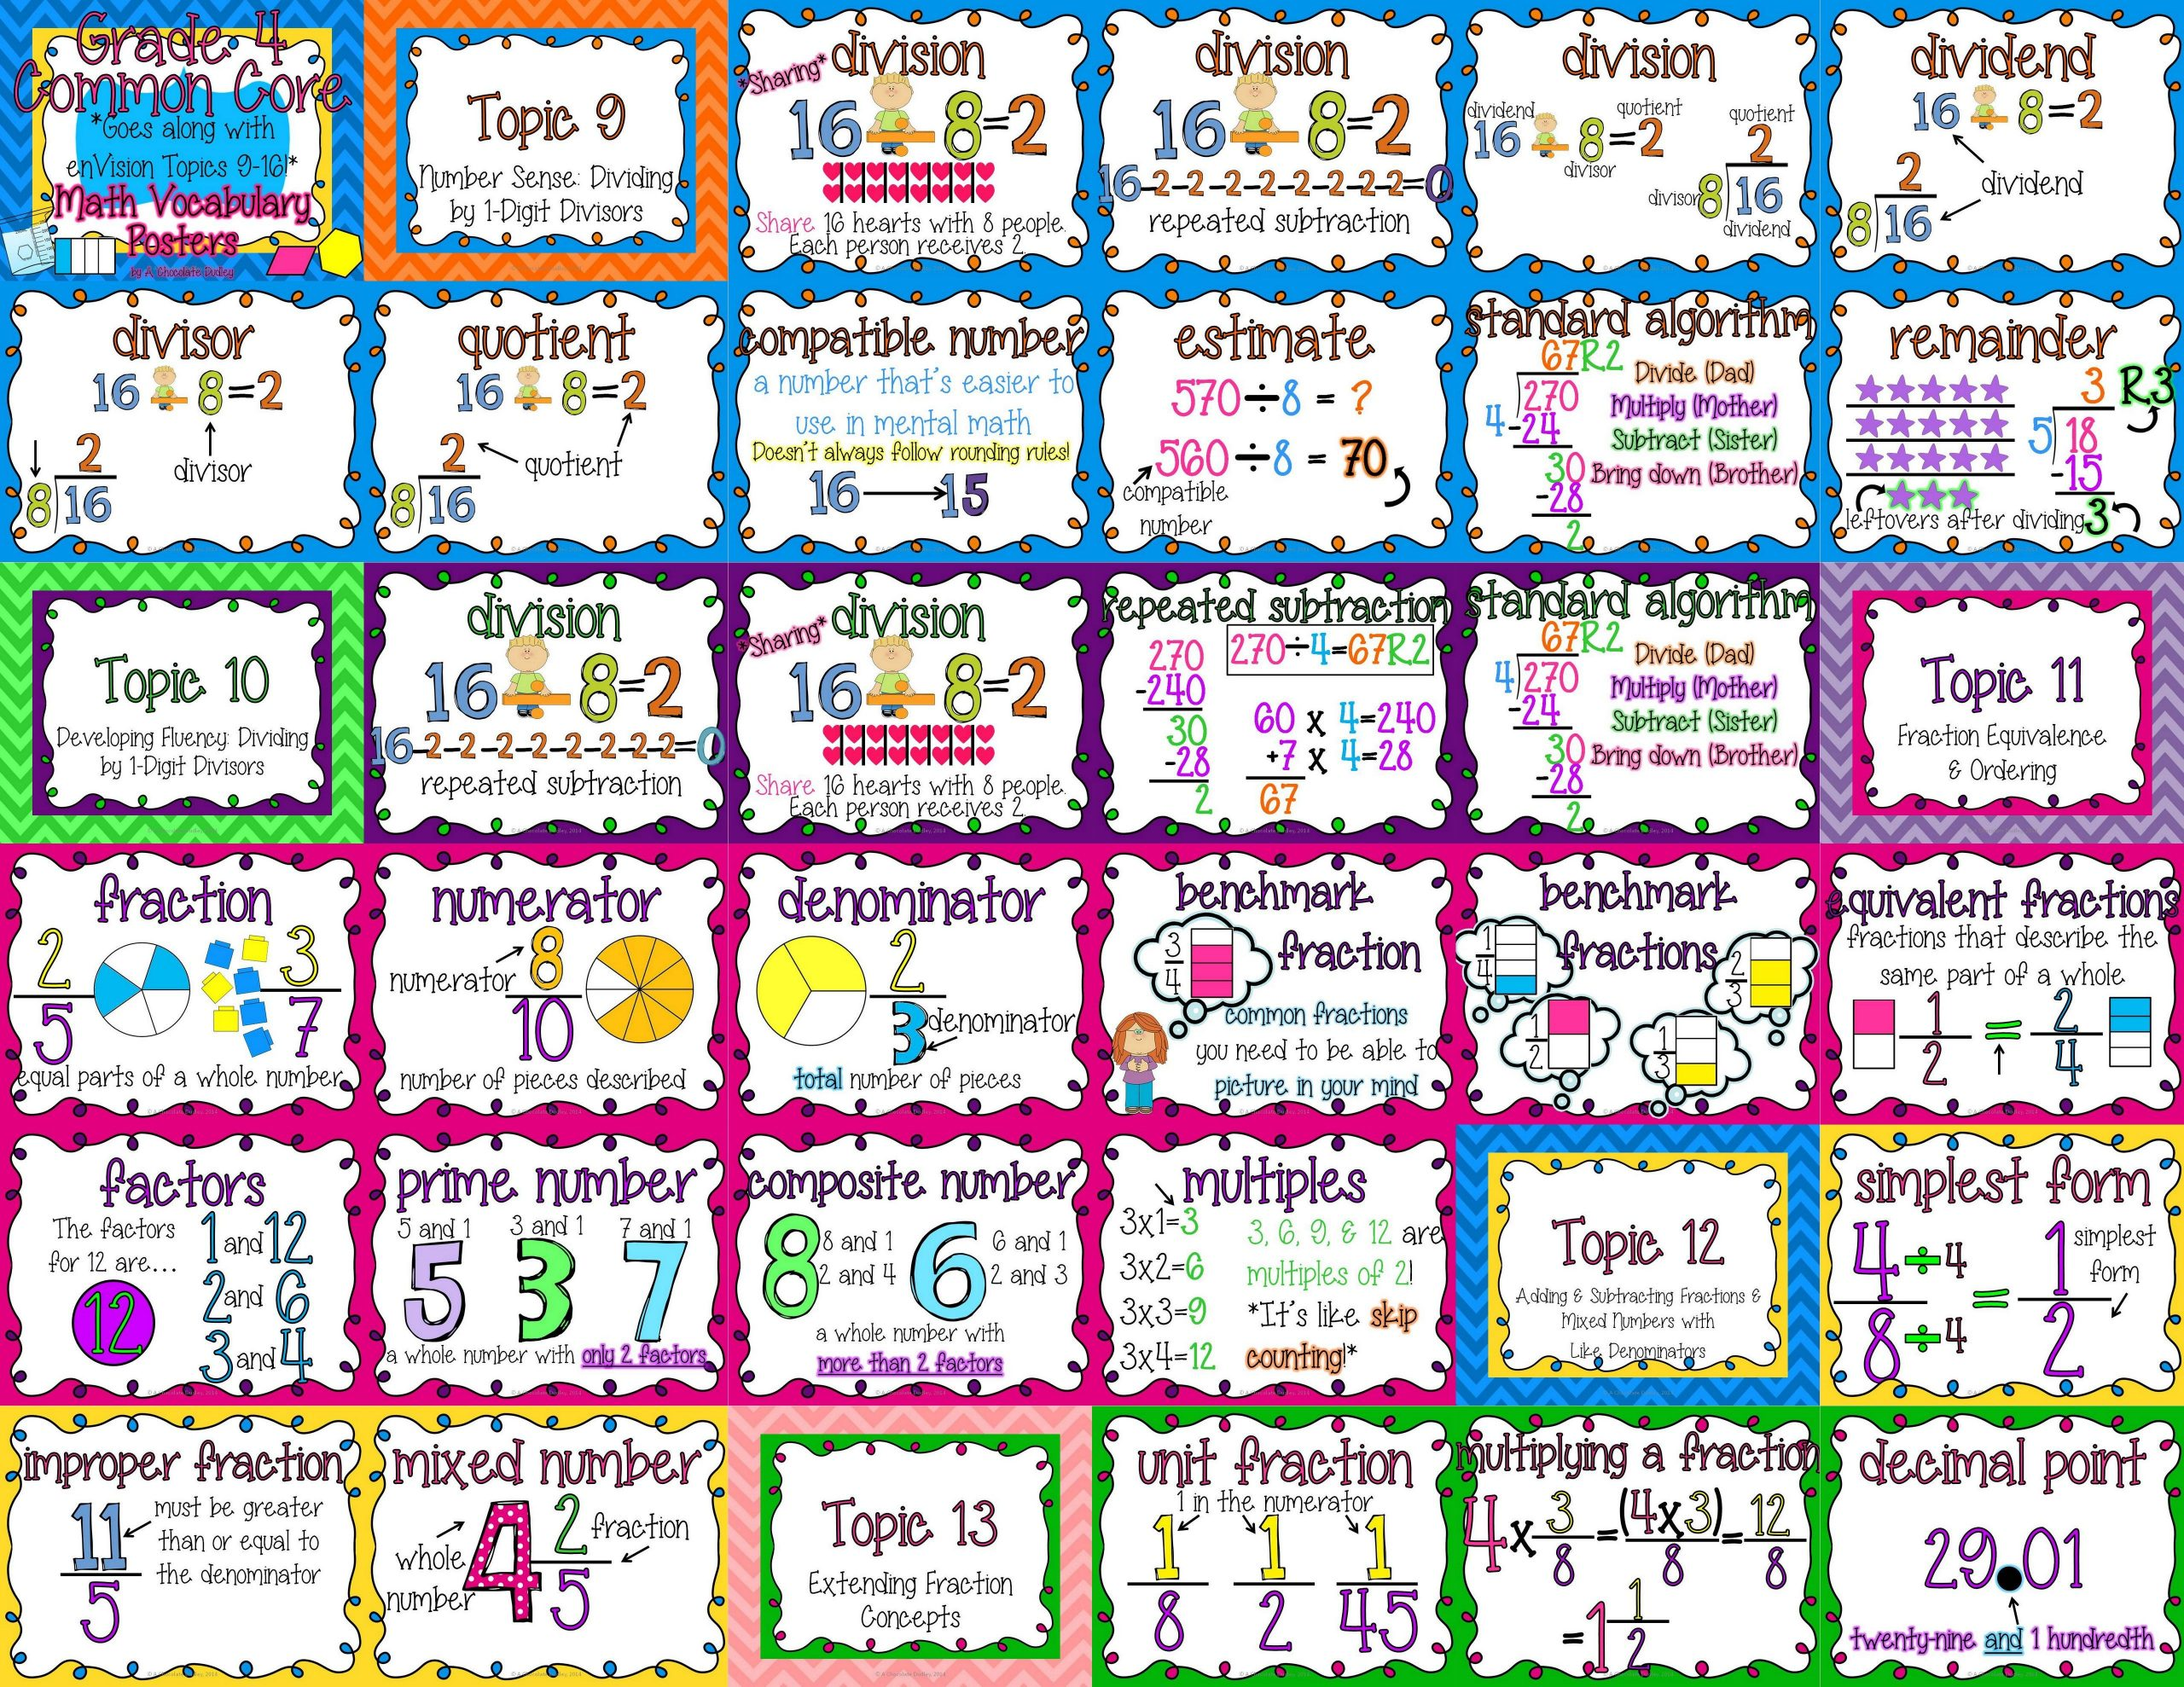 Envision Math 4th Grade Worksheets Grade 4 Mon Core Math Vocabulary Posters topics 9 16